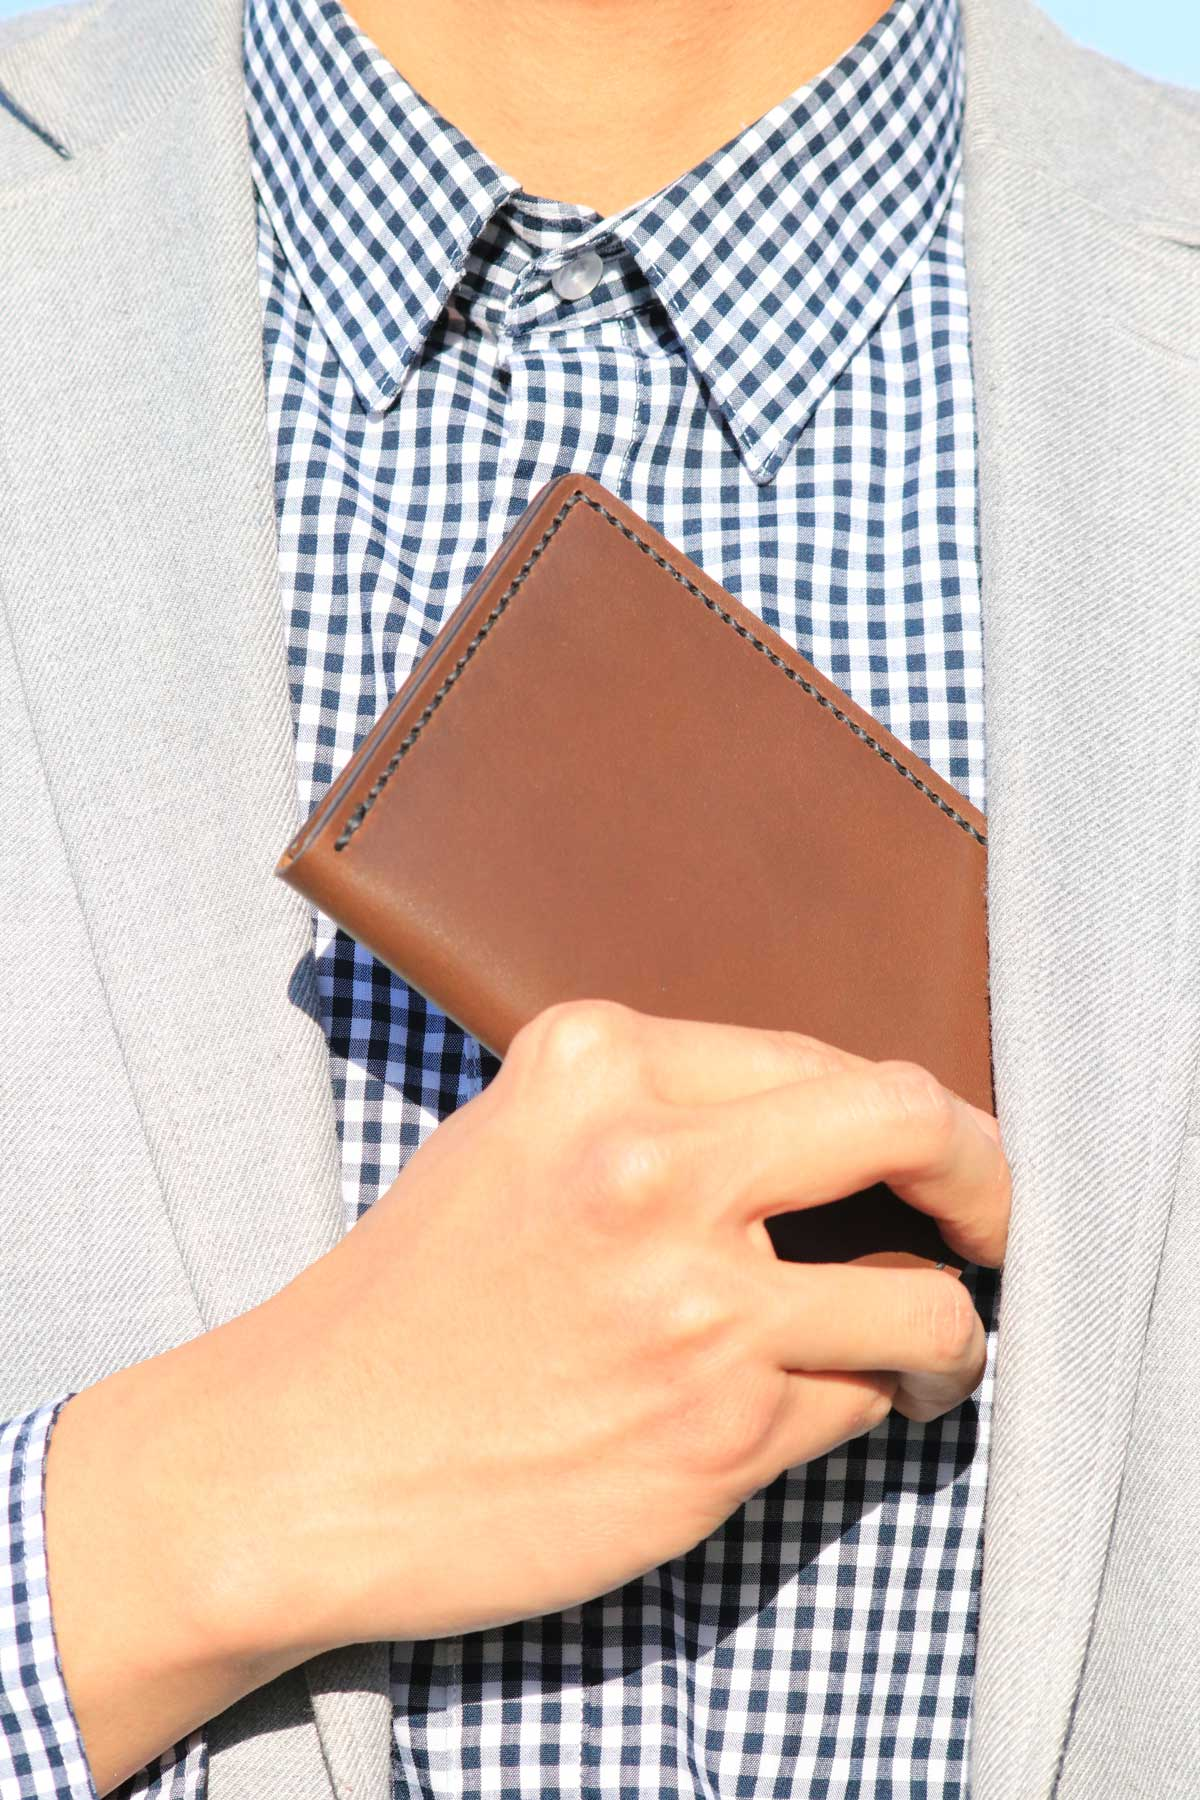 Passport-Holder-Brown-03.jpg